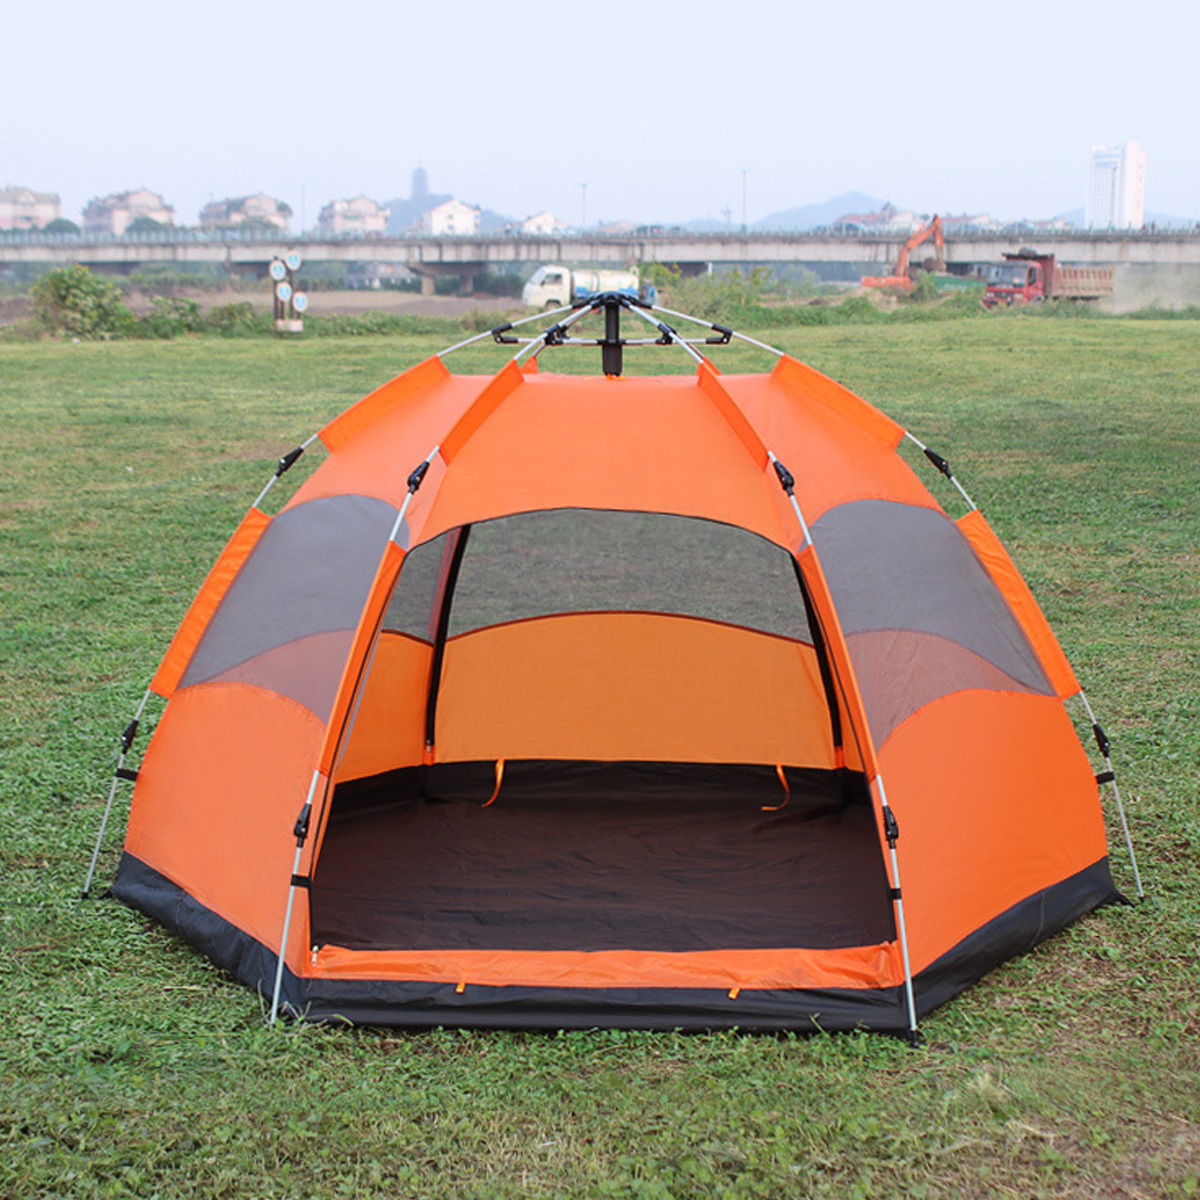 Outdoor Automatic Beach Tent Sun Shelter UV Protection 5-8 Persons Family Tent for Camping